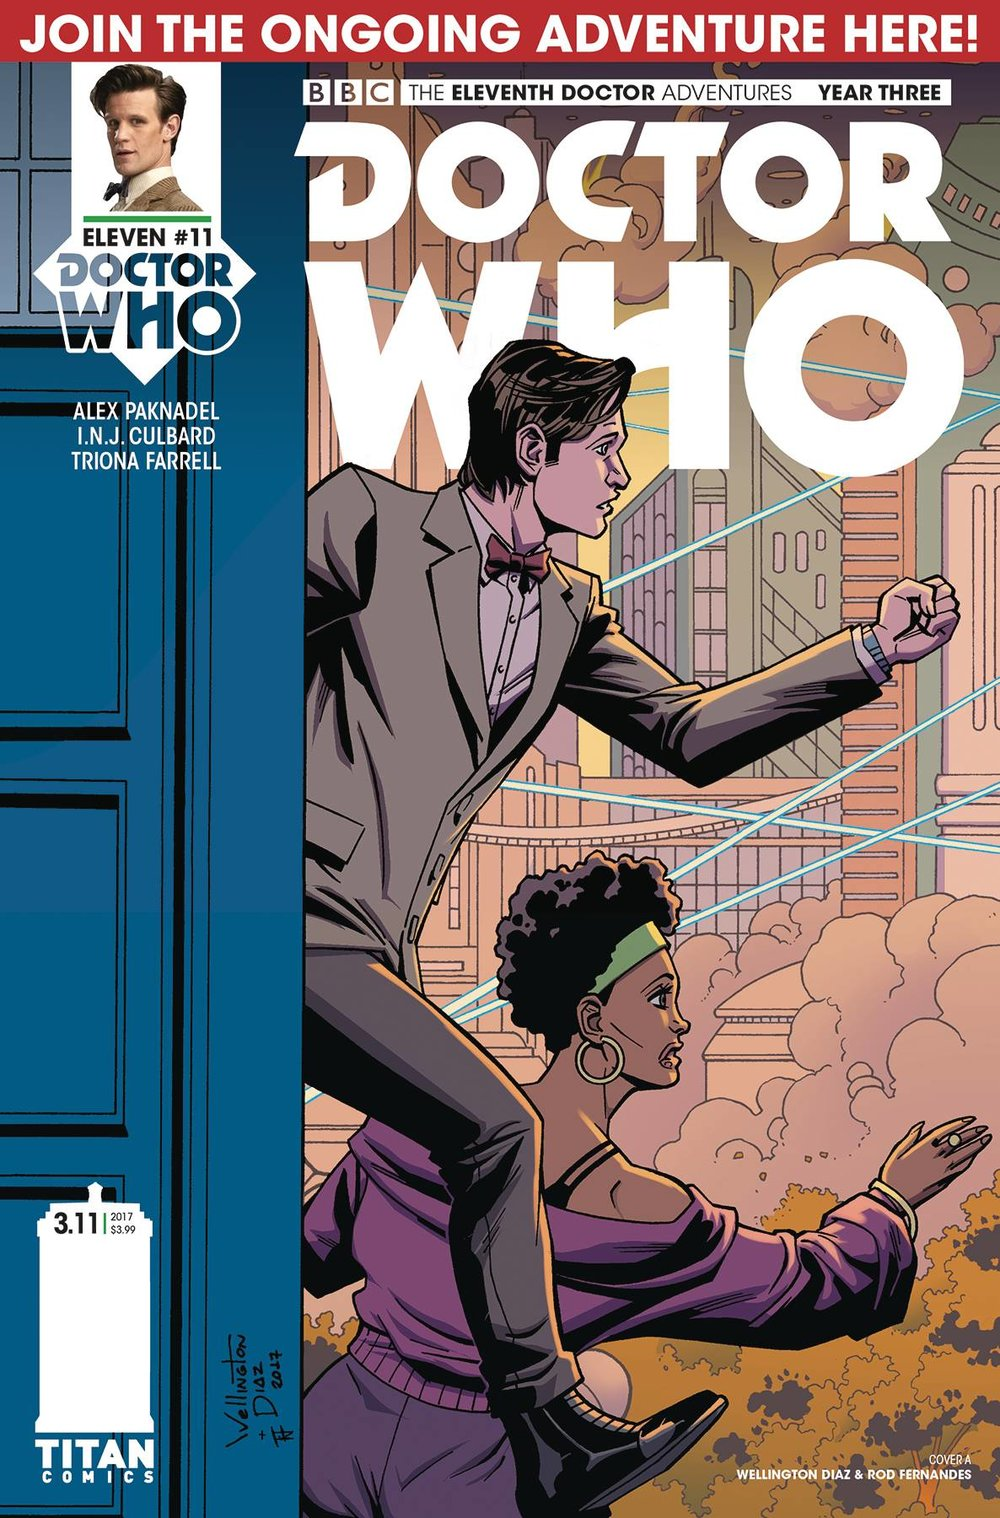 DOCTOR WHO 11TH YEAR THREE 11 CVR A DIAZ.jpg